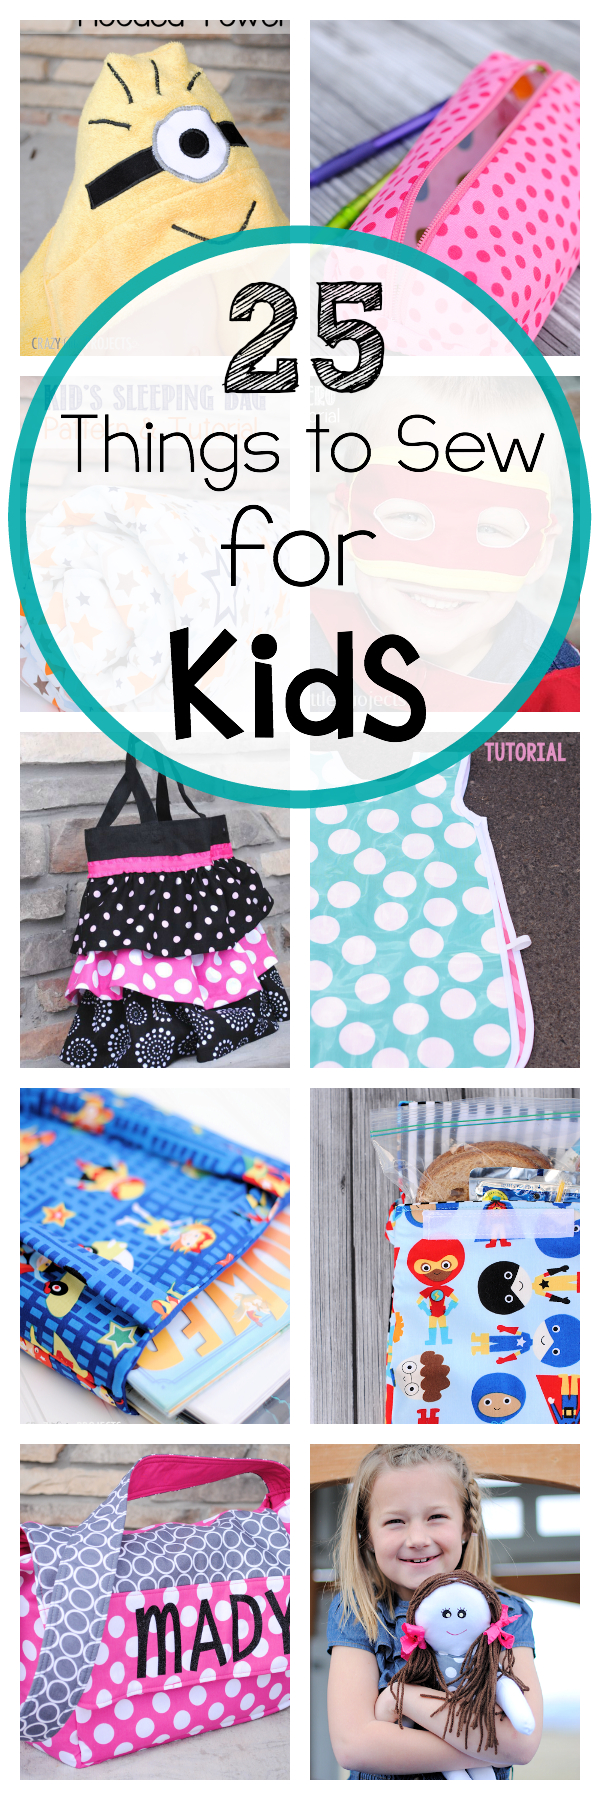 25 Sewing Patterns for Kids-So many cute and easy things to sew for kids a90bda4221d1a